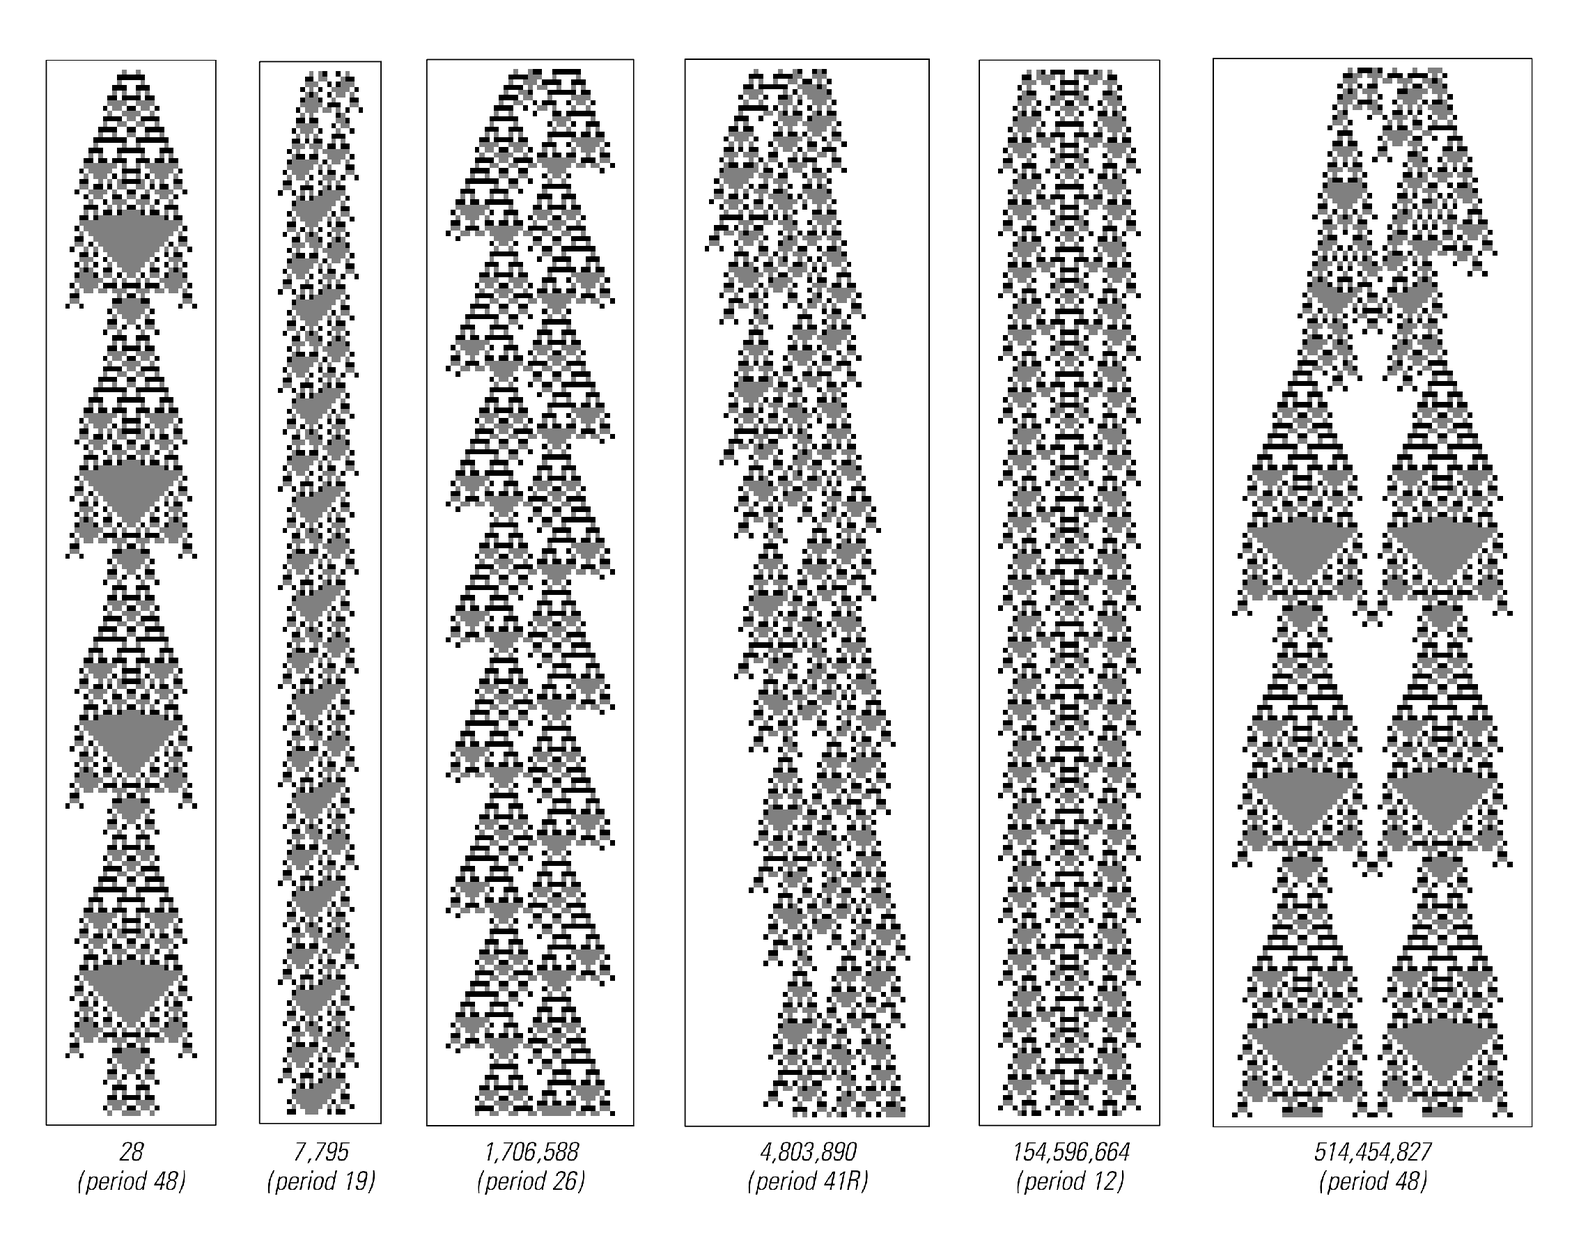 Persistent structures in code 357 cellular automaton